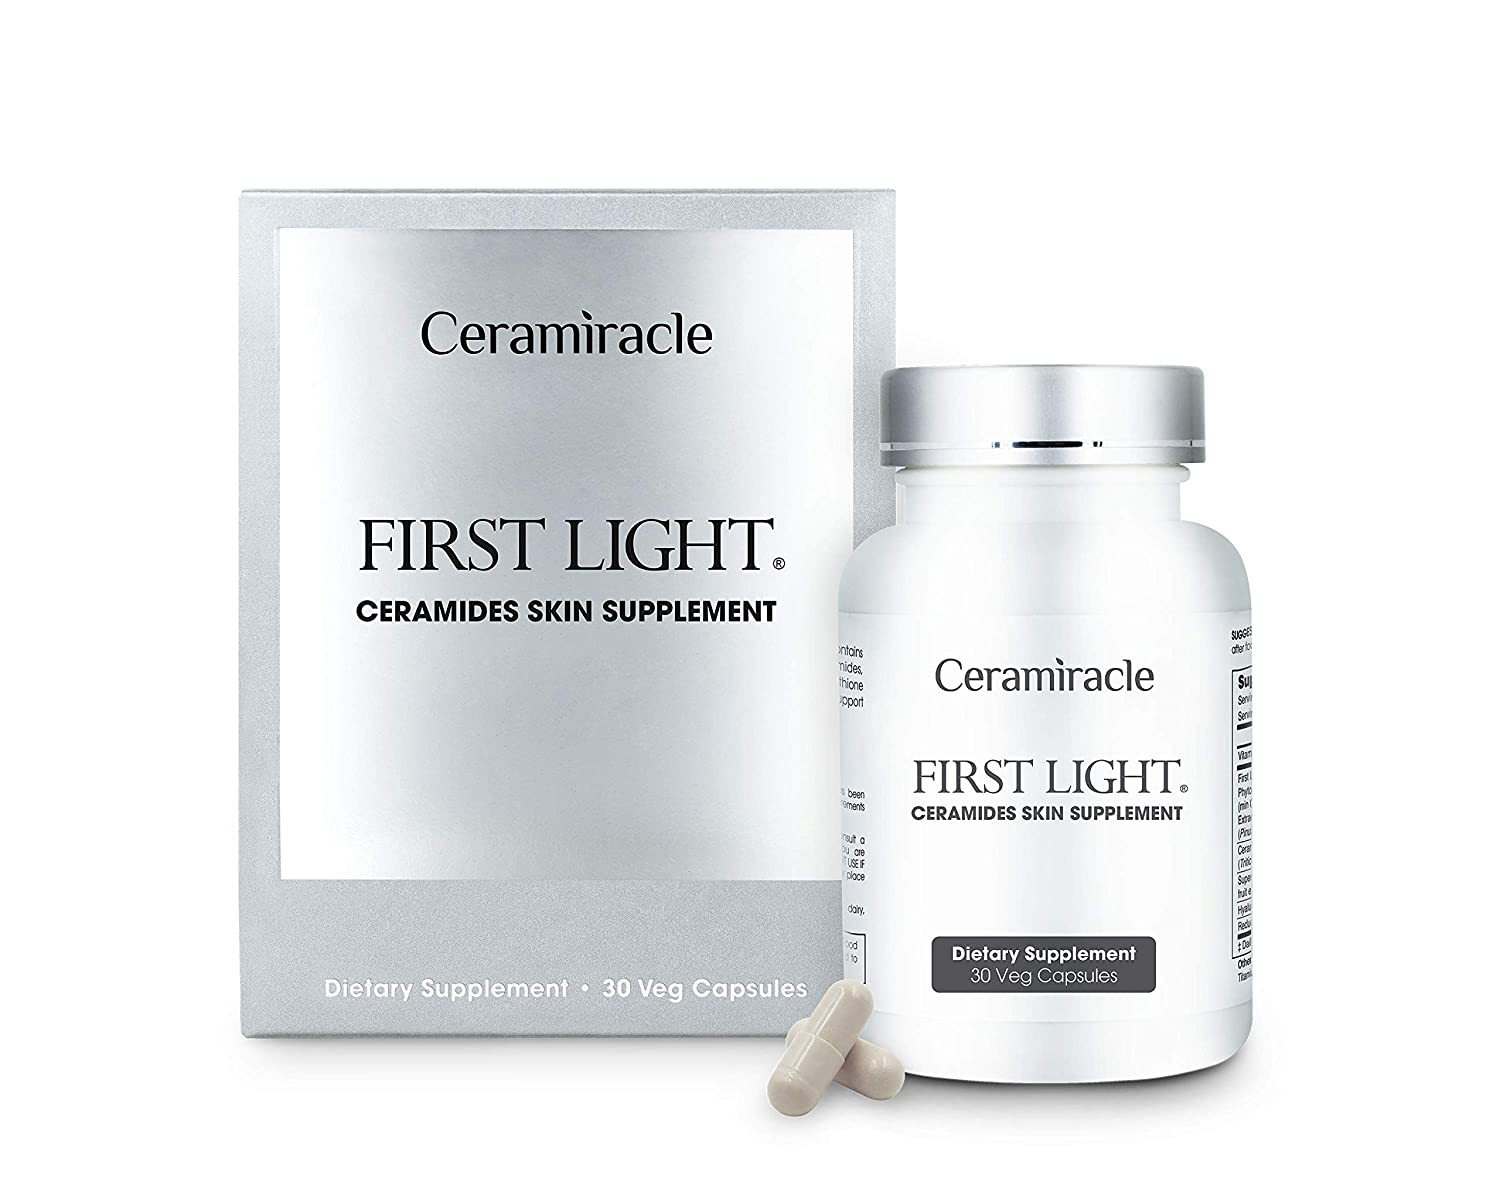 Ceramiracle First Light Ceramides Skin Supplement, Target Visible Signs of Aging, Boost Hydration, 30-Day Supply…